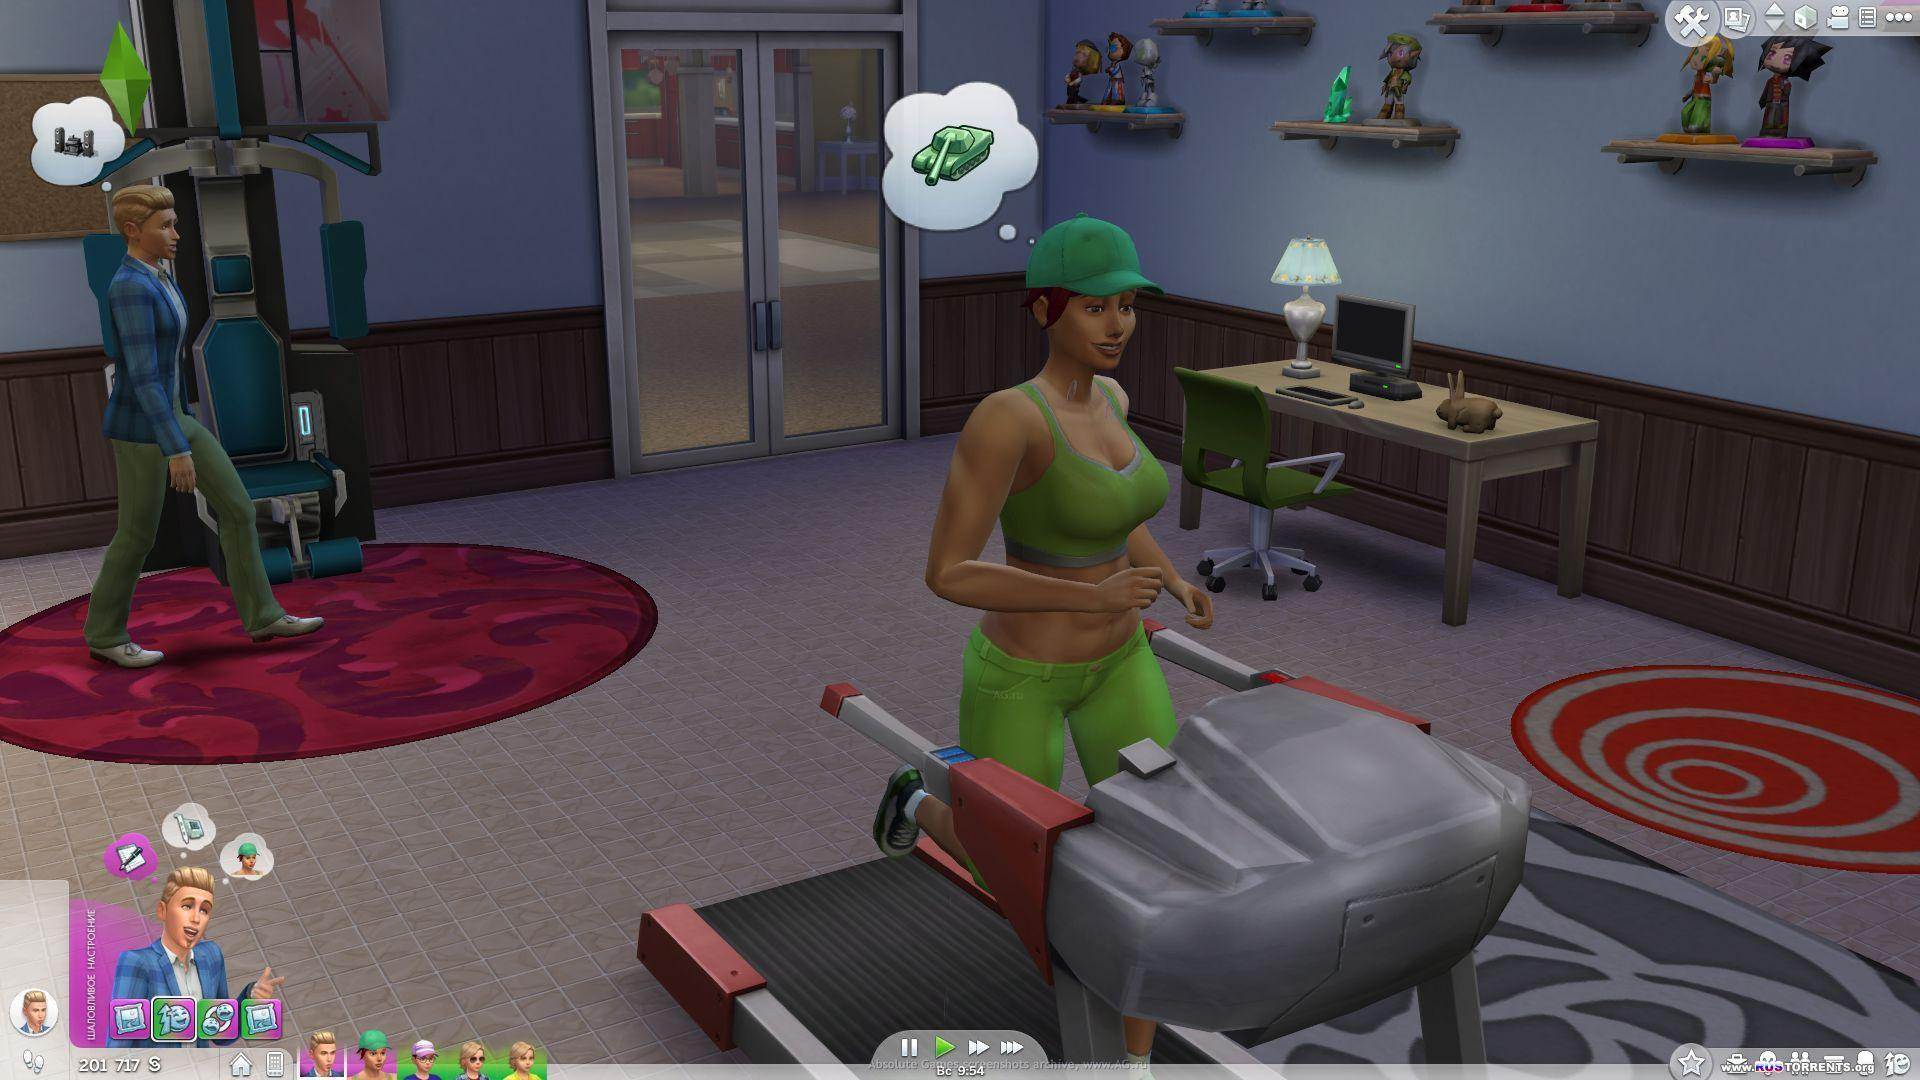 The Sims 4: Digital Deluxe Edition [v.1.0.732.20.]   PC   RePack by XLASER